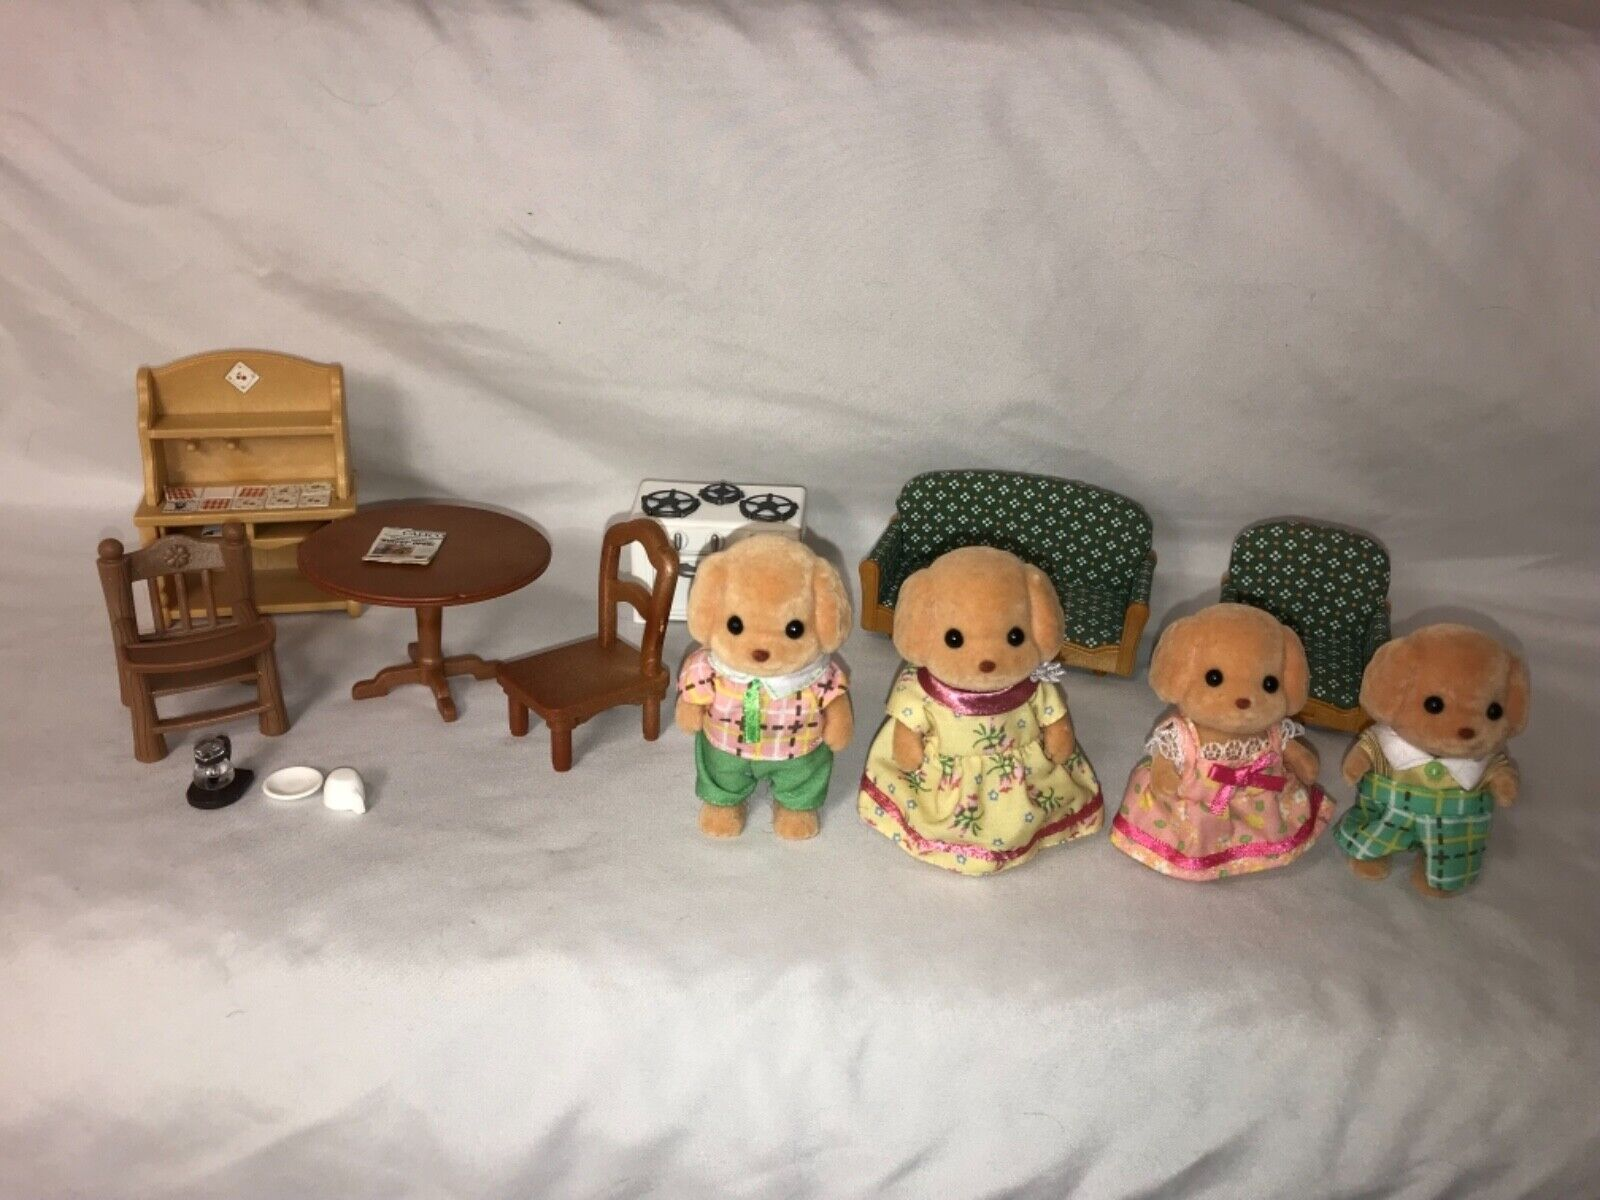 Calico Critters Toy Poodle Family With Furniture and Accessories Lot